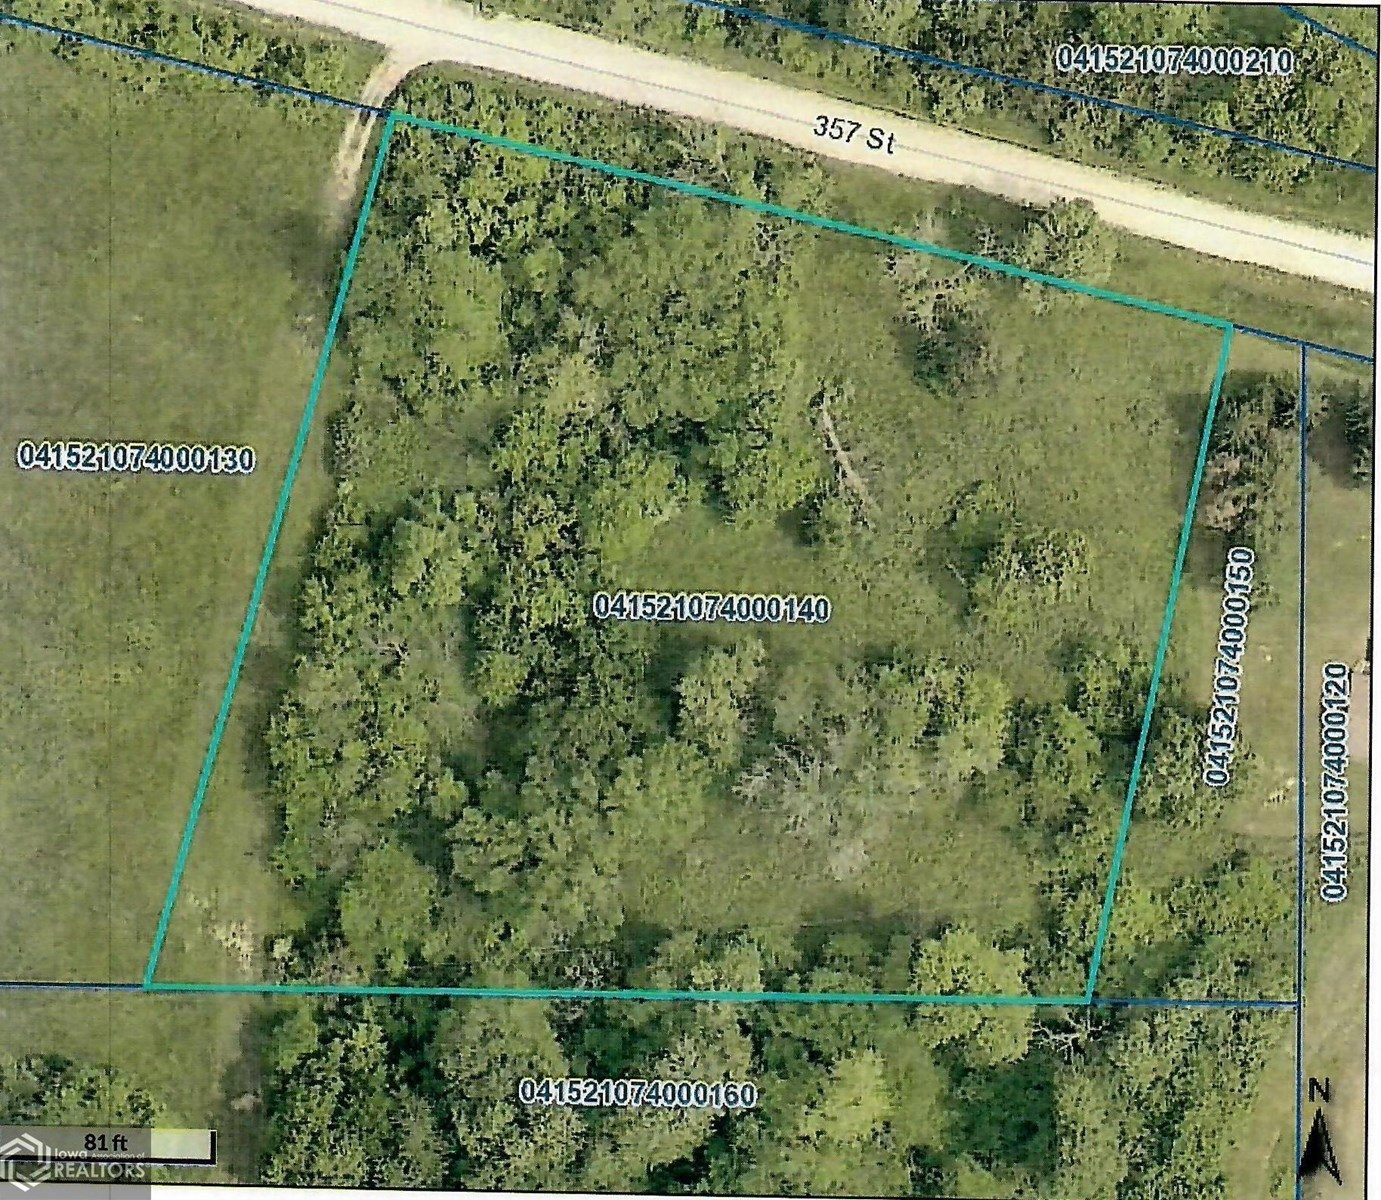 Land For Sale in Lee Co, IA, Great For Building